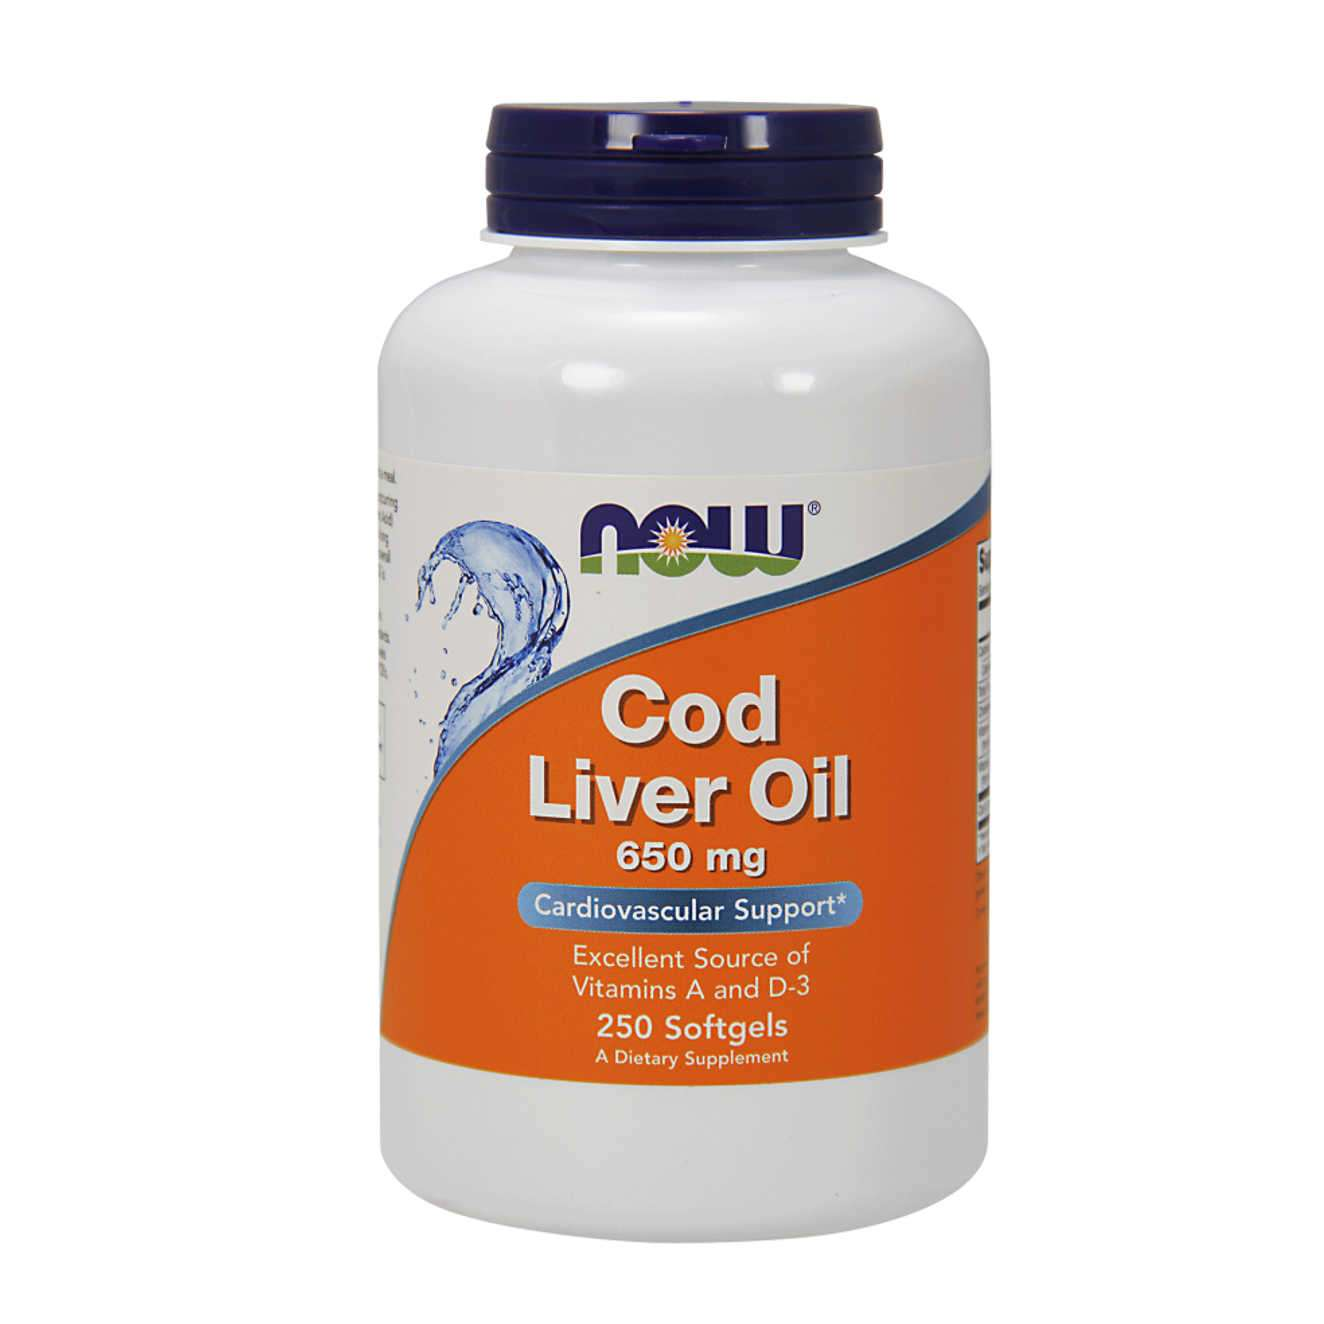 COD LIVER OIL 650mg - 250 softgels